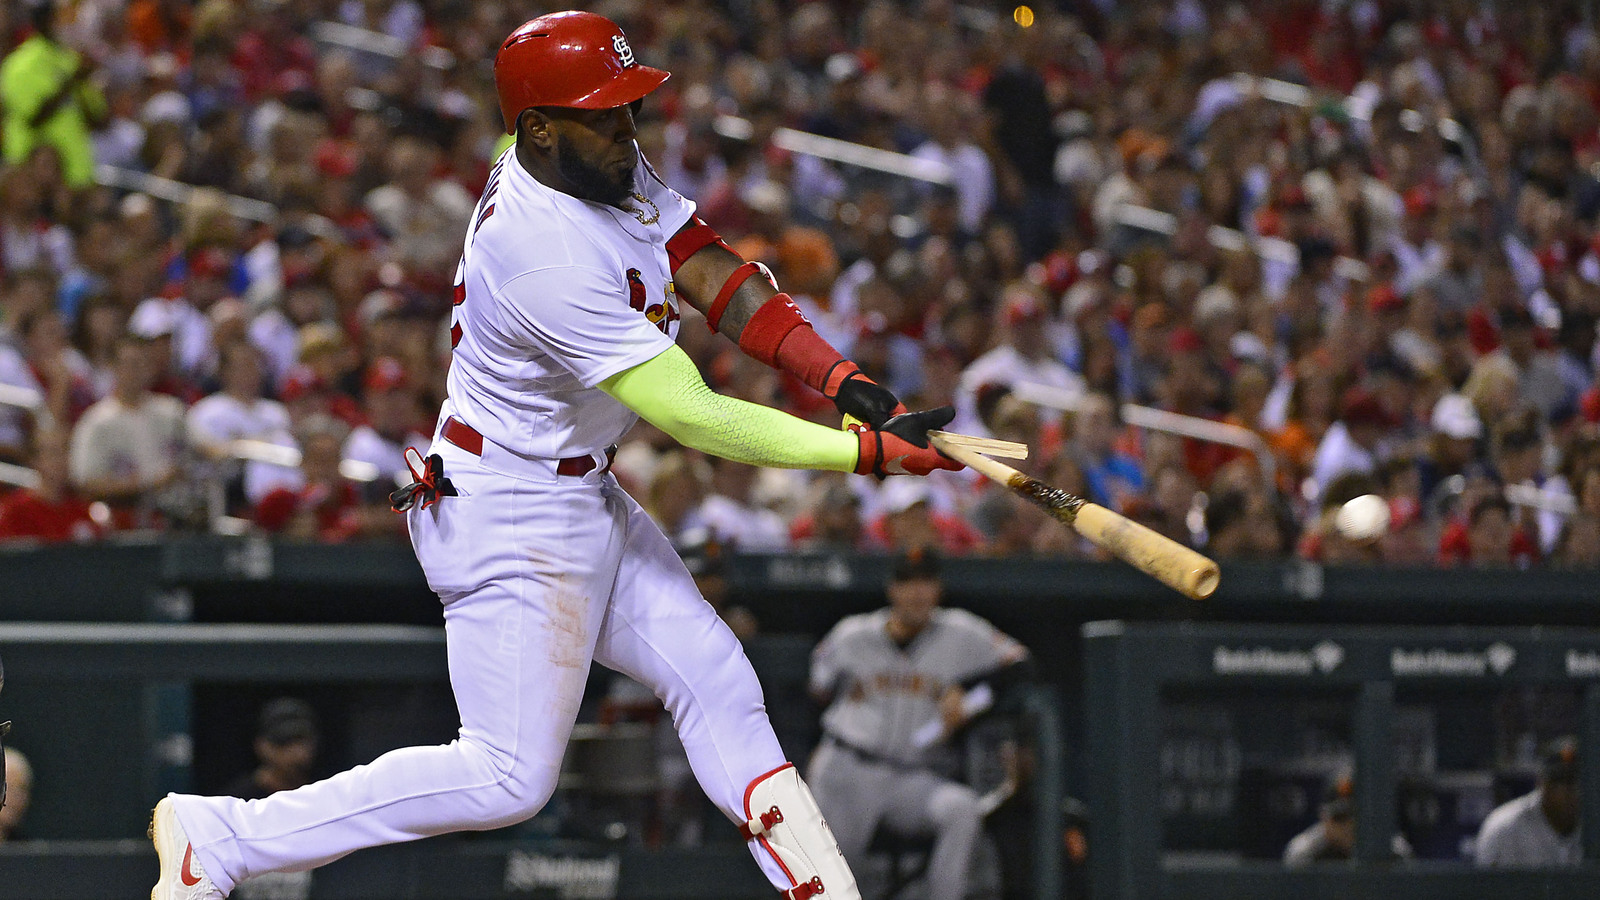 Marcell Ozuna playing more efficiently since shoulder recovery